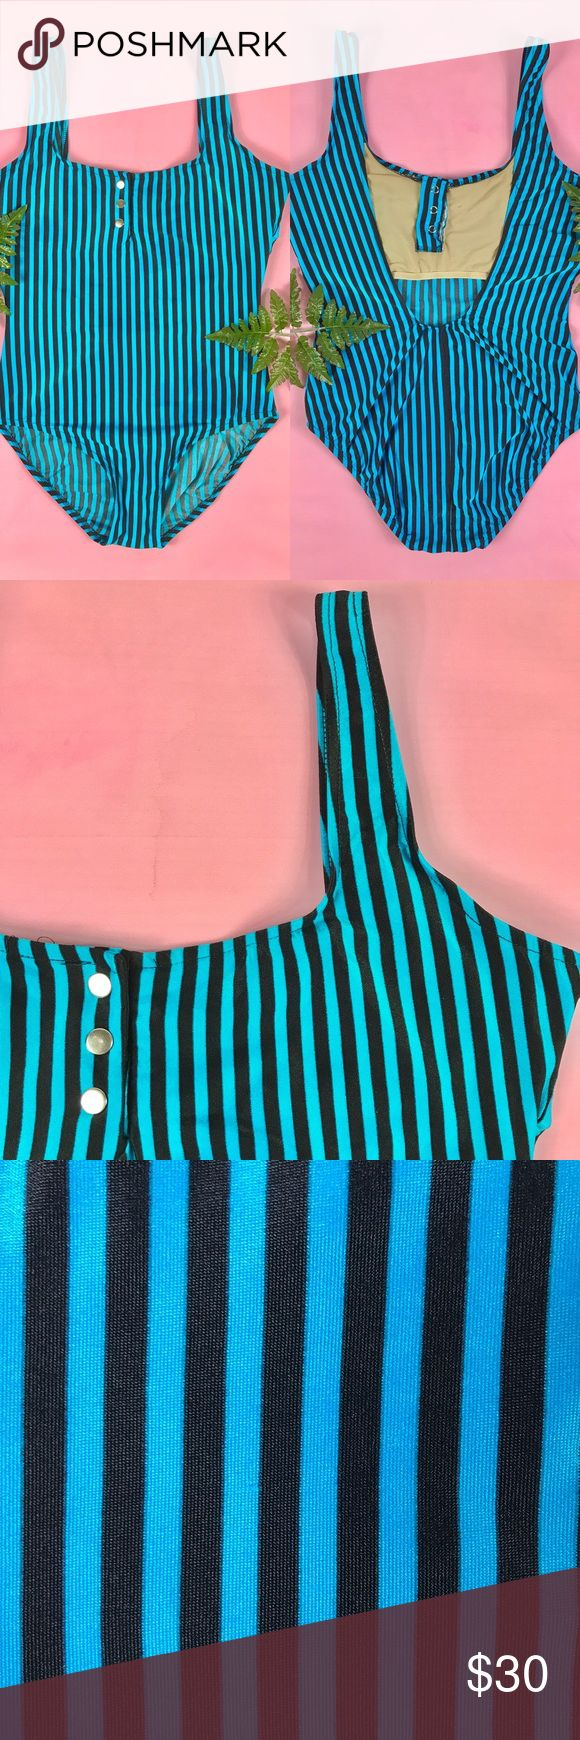 "Vtg 80s one piece striped bathing suit 🌴👙💦 cute 1980s blue and black vertical striped one piece swim suit! low cut back and high cut legs for that ultimate 80's look. three functional snap buttons. made by ILGWU. excellent vintage condition, no noted flaws!  FEATURES: label - Avon Fashions size labeled - 13/14 made of - 85% nylon/15% spandex made in USA  *keep in mind vintage sizes sometimes vary from todays*  MEASUREMENTS:  laying flat, double when appropriate 28"" length 18-21"" bust…"